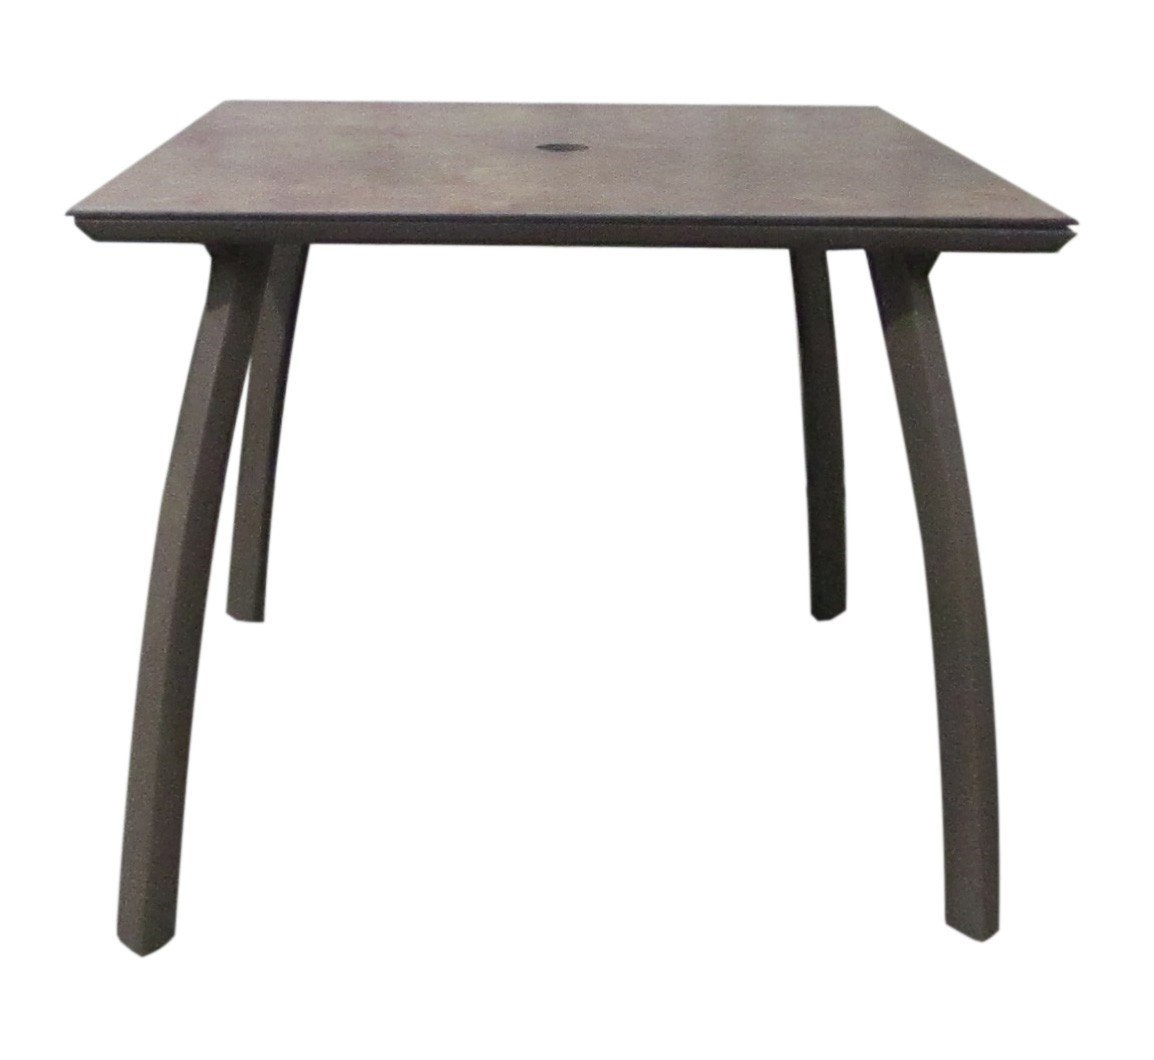 patio and on of in outdoor table tables iron ismaya with furniture to regard dining room image decorative design wrought durable